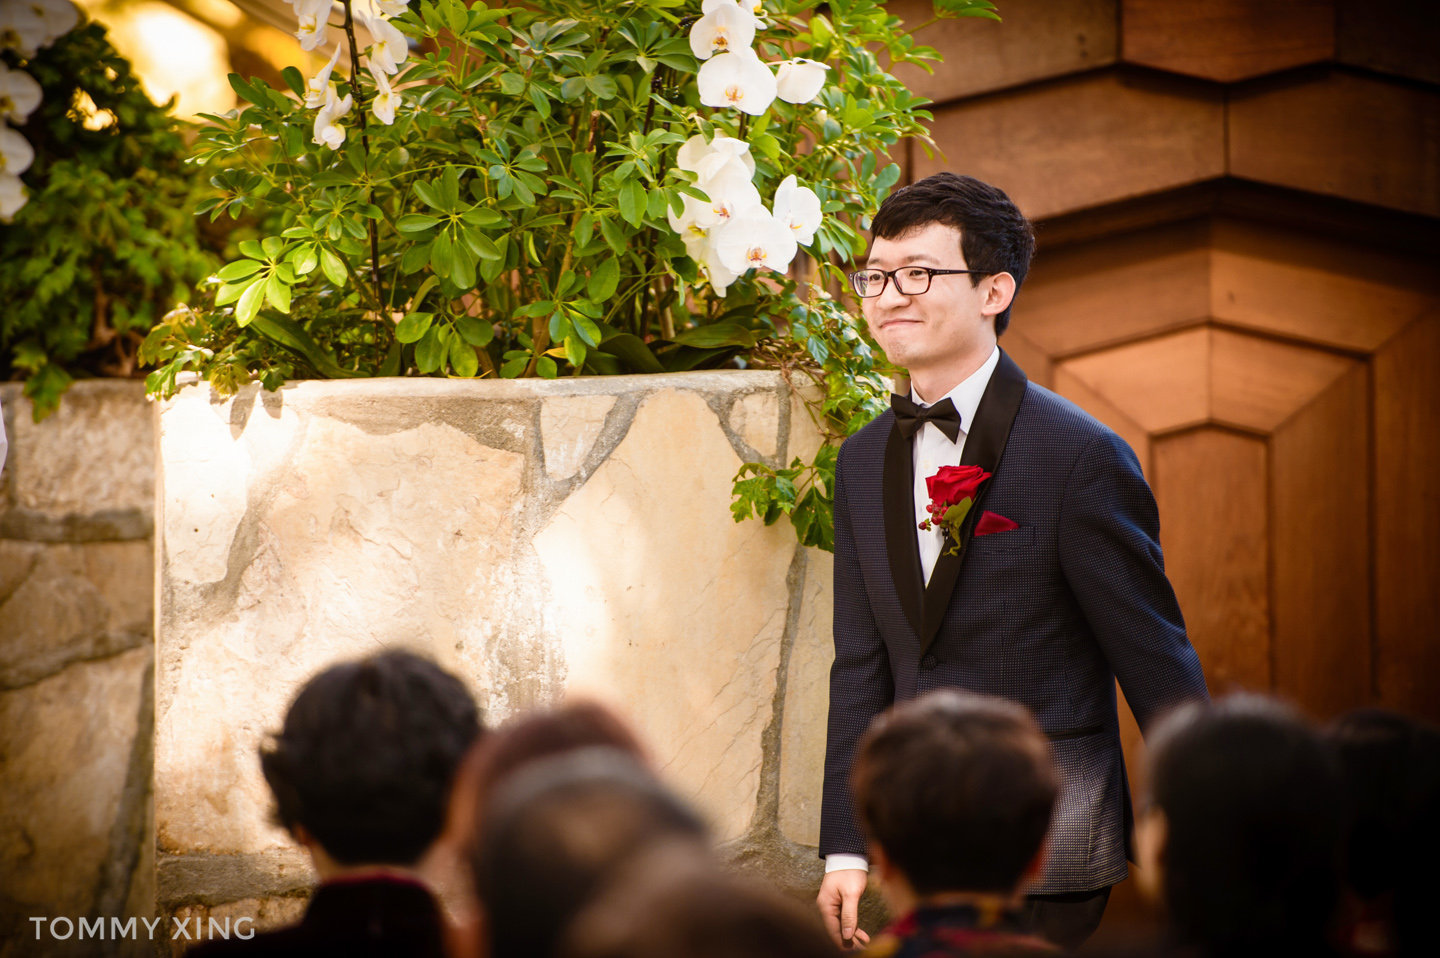 Los Angeles Wedding Photographer 洛杉矶婚礼婚纱摄影师 Tommy Xing-103.JPG